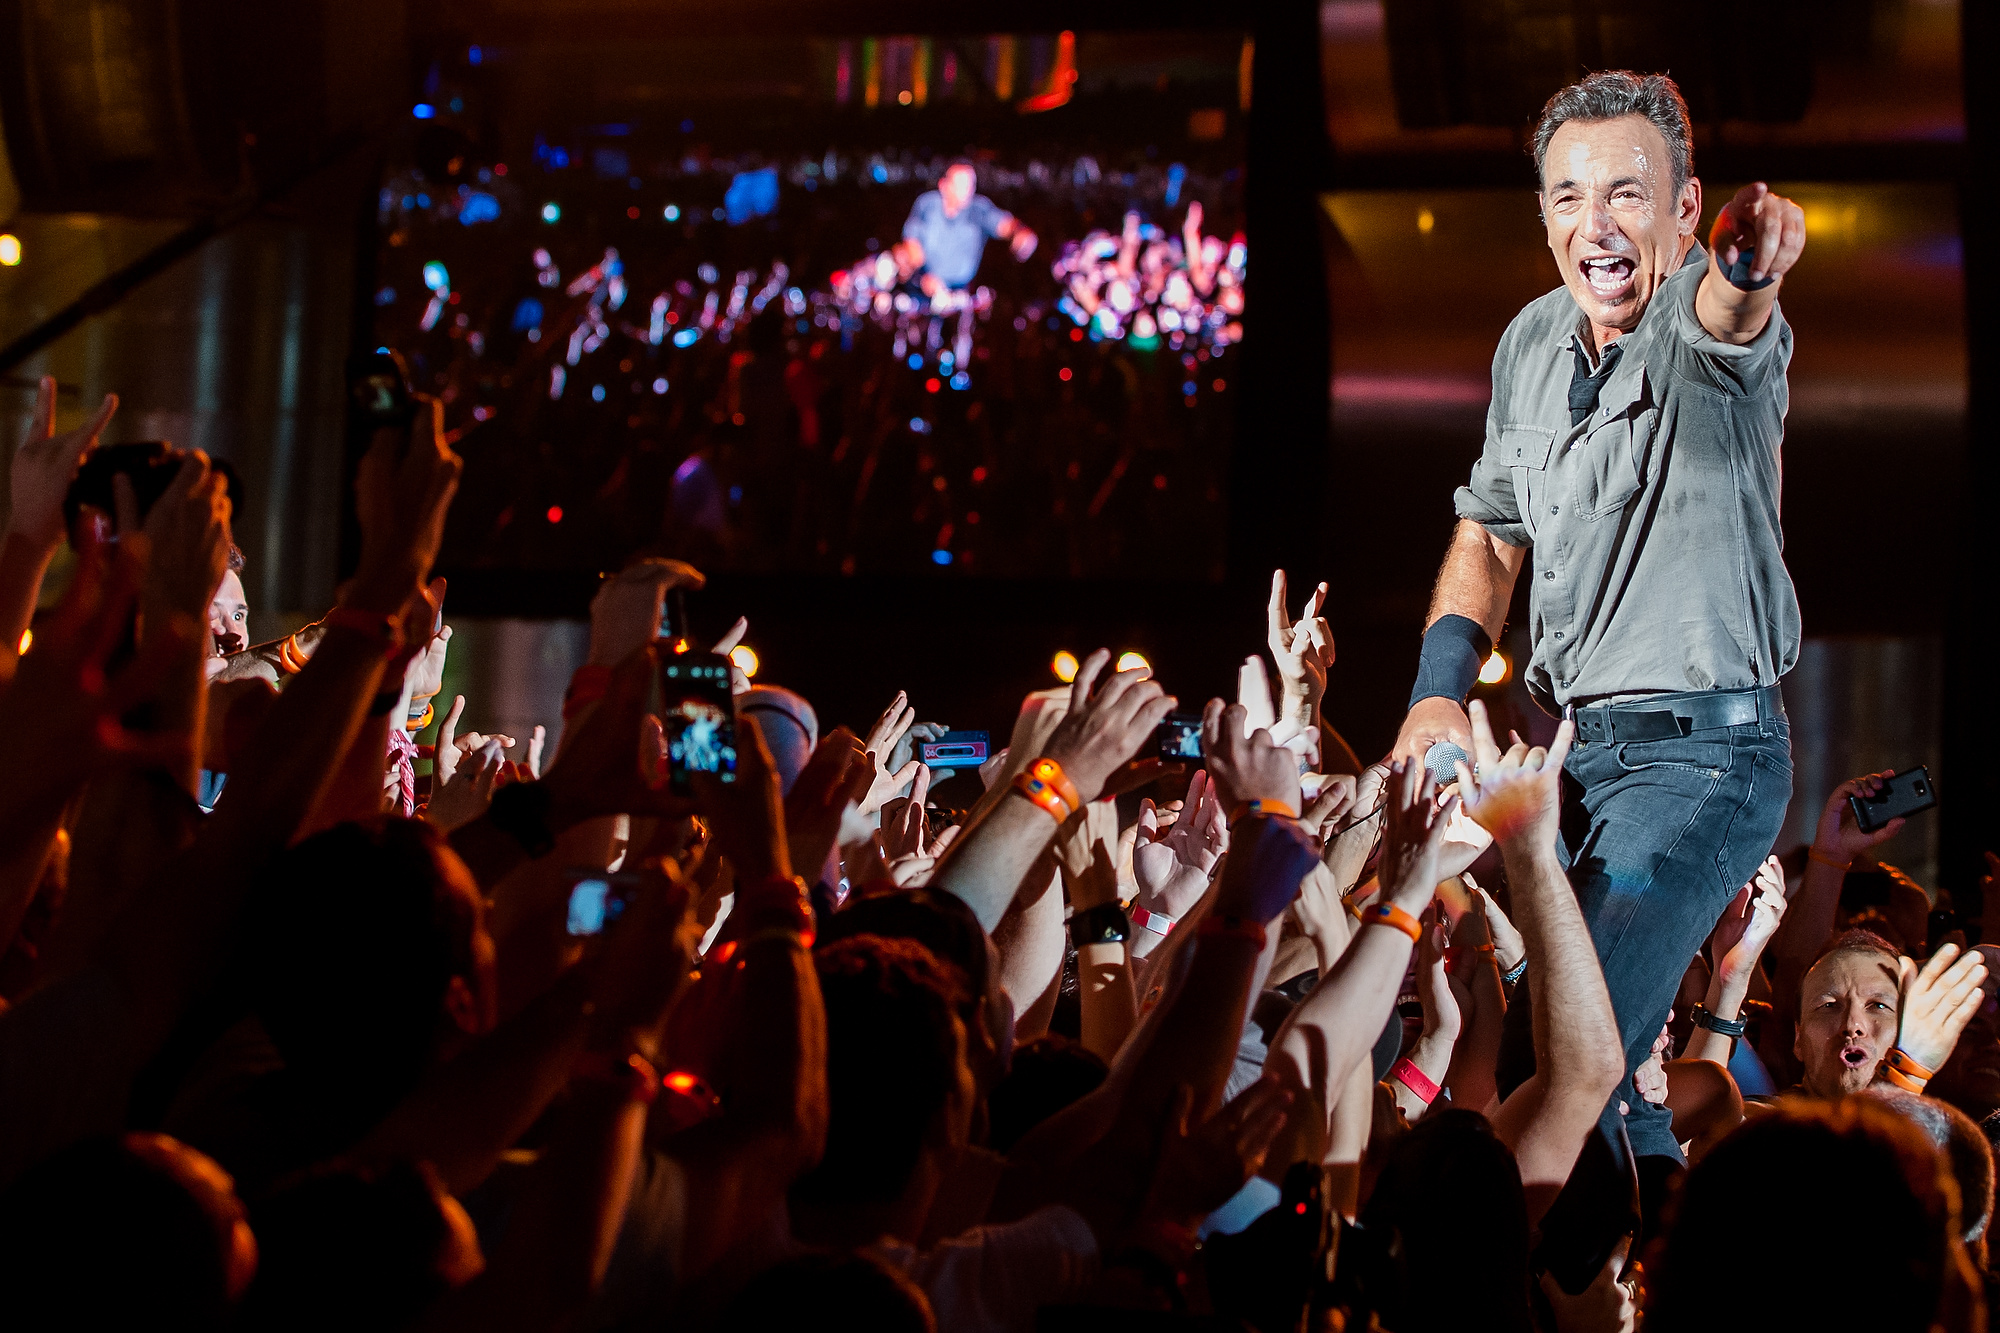 Bruce Springsteen E Street Band Set The River Tour For 2016 Rolling Stone